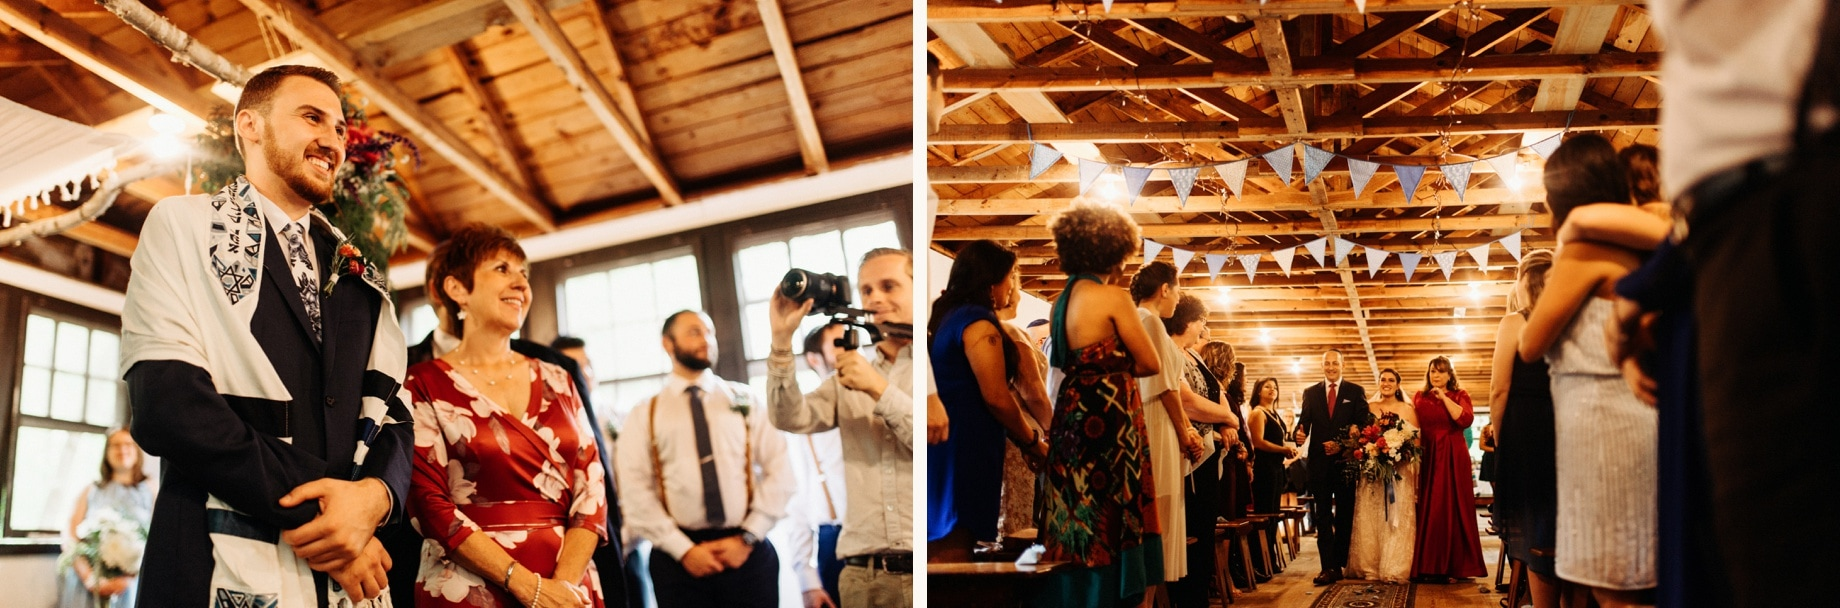 Bride walks down the aisle in a jewish wedding ceremony at Prince William Forest Park